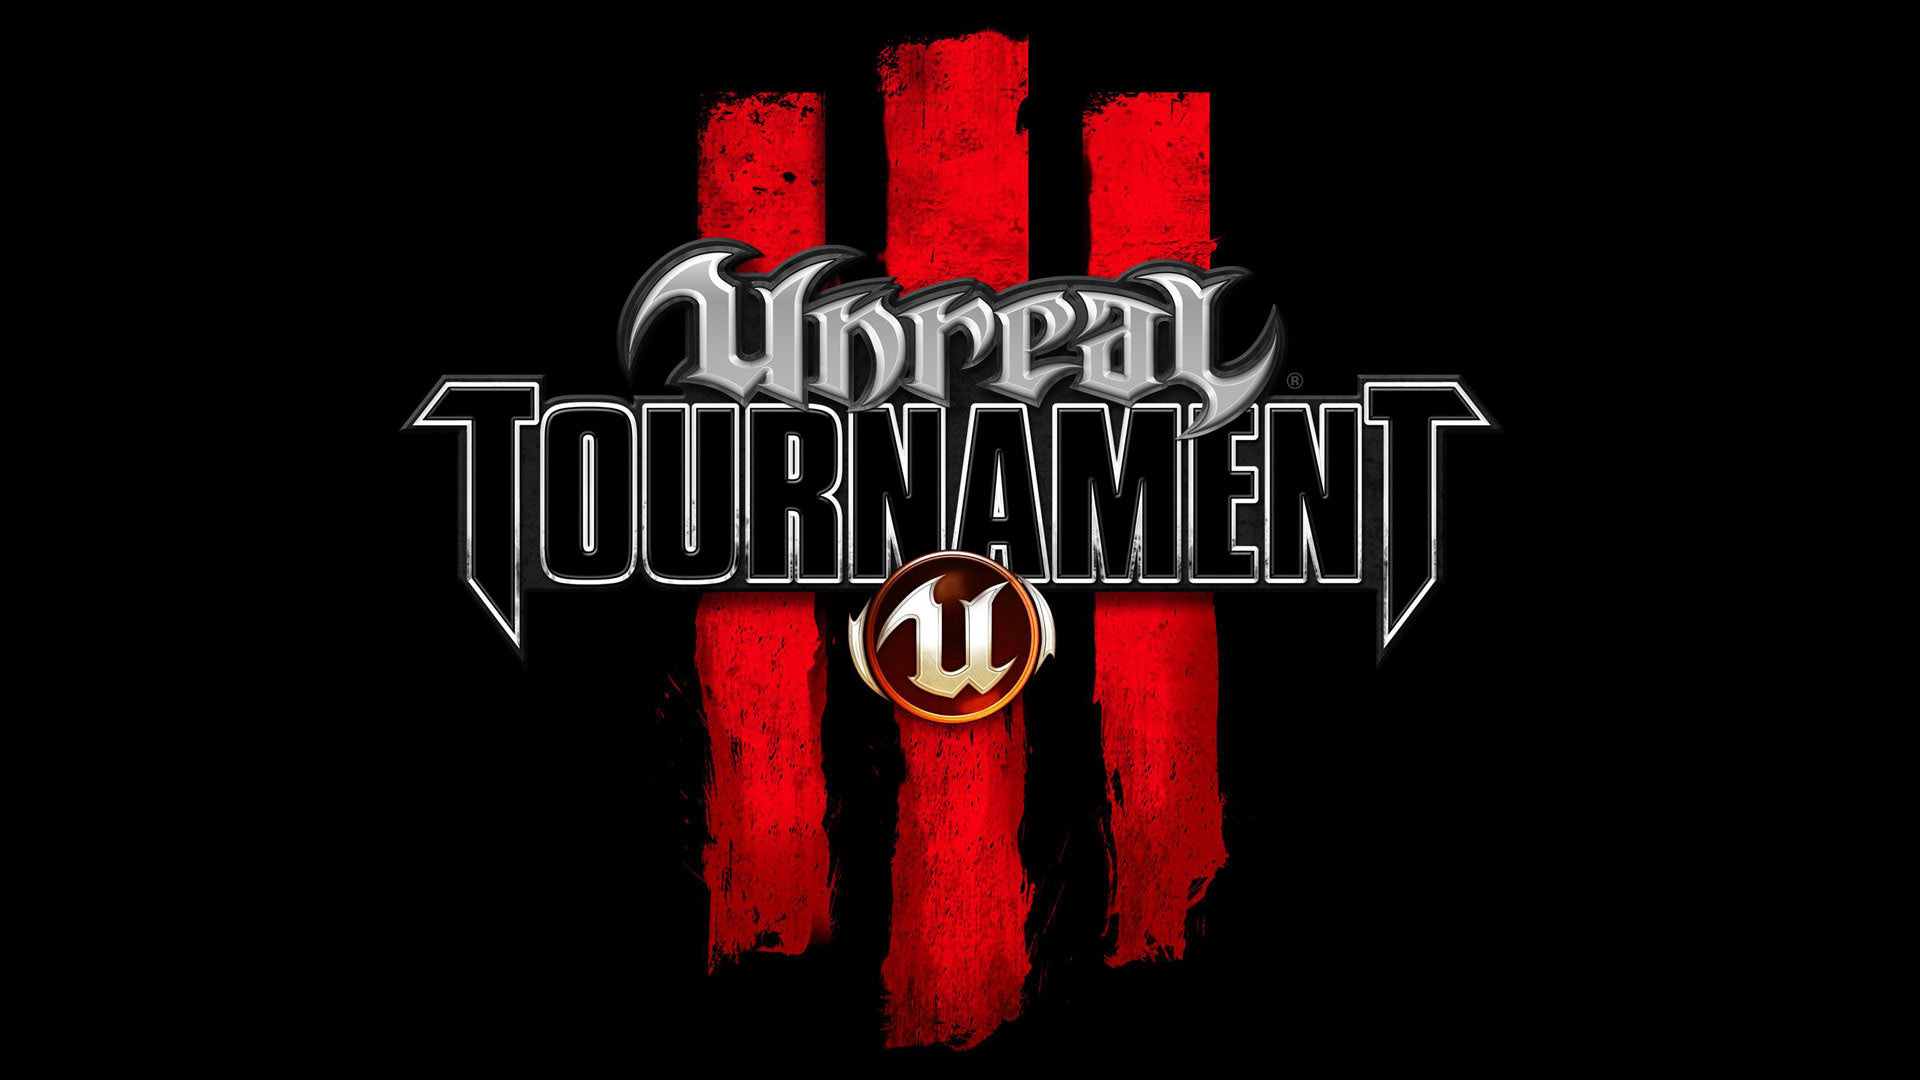 Unreal Tournament 3 Fondo De Pantalla Hd Fondo De